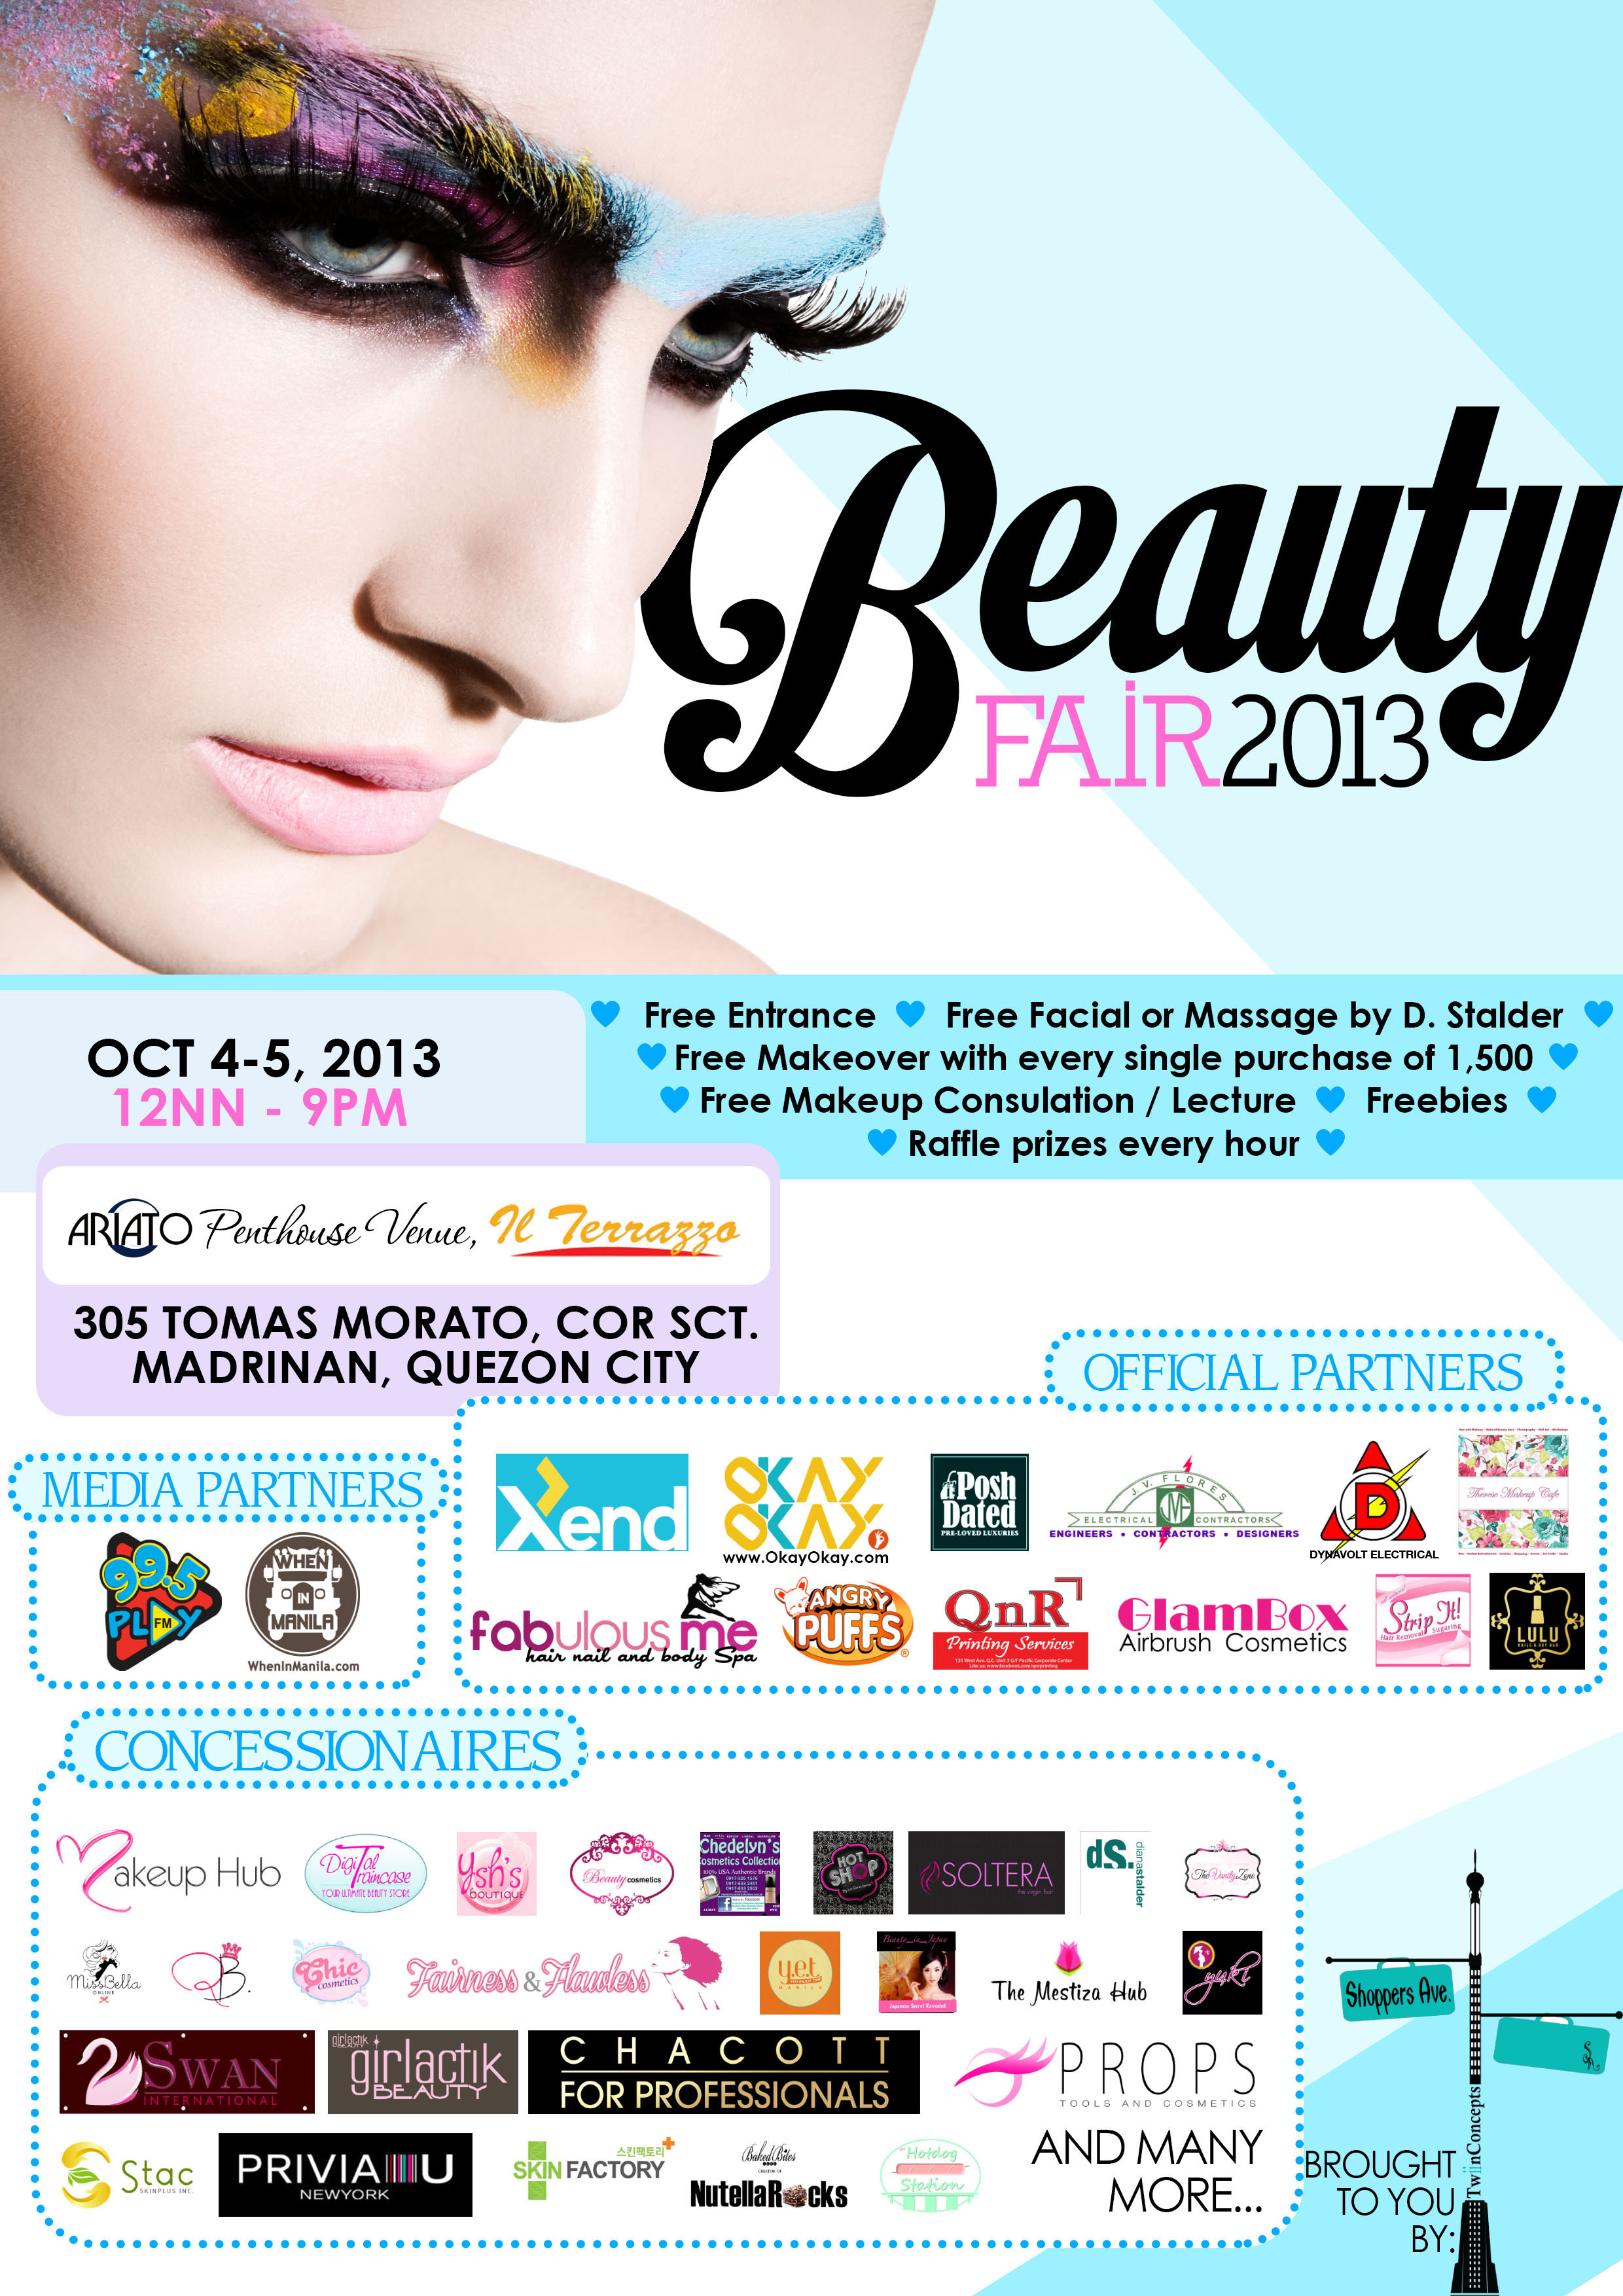 Shoppers Avenue Beauty Fair 2013 @ Il Terrazzo October 2013